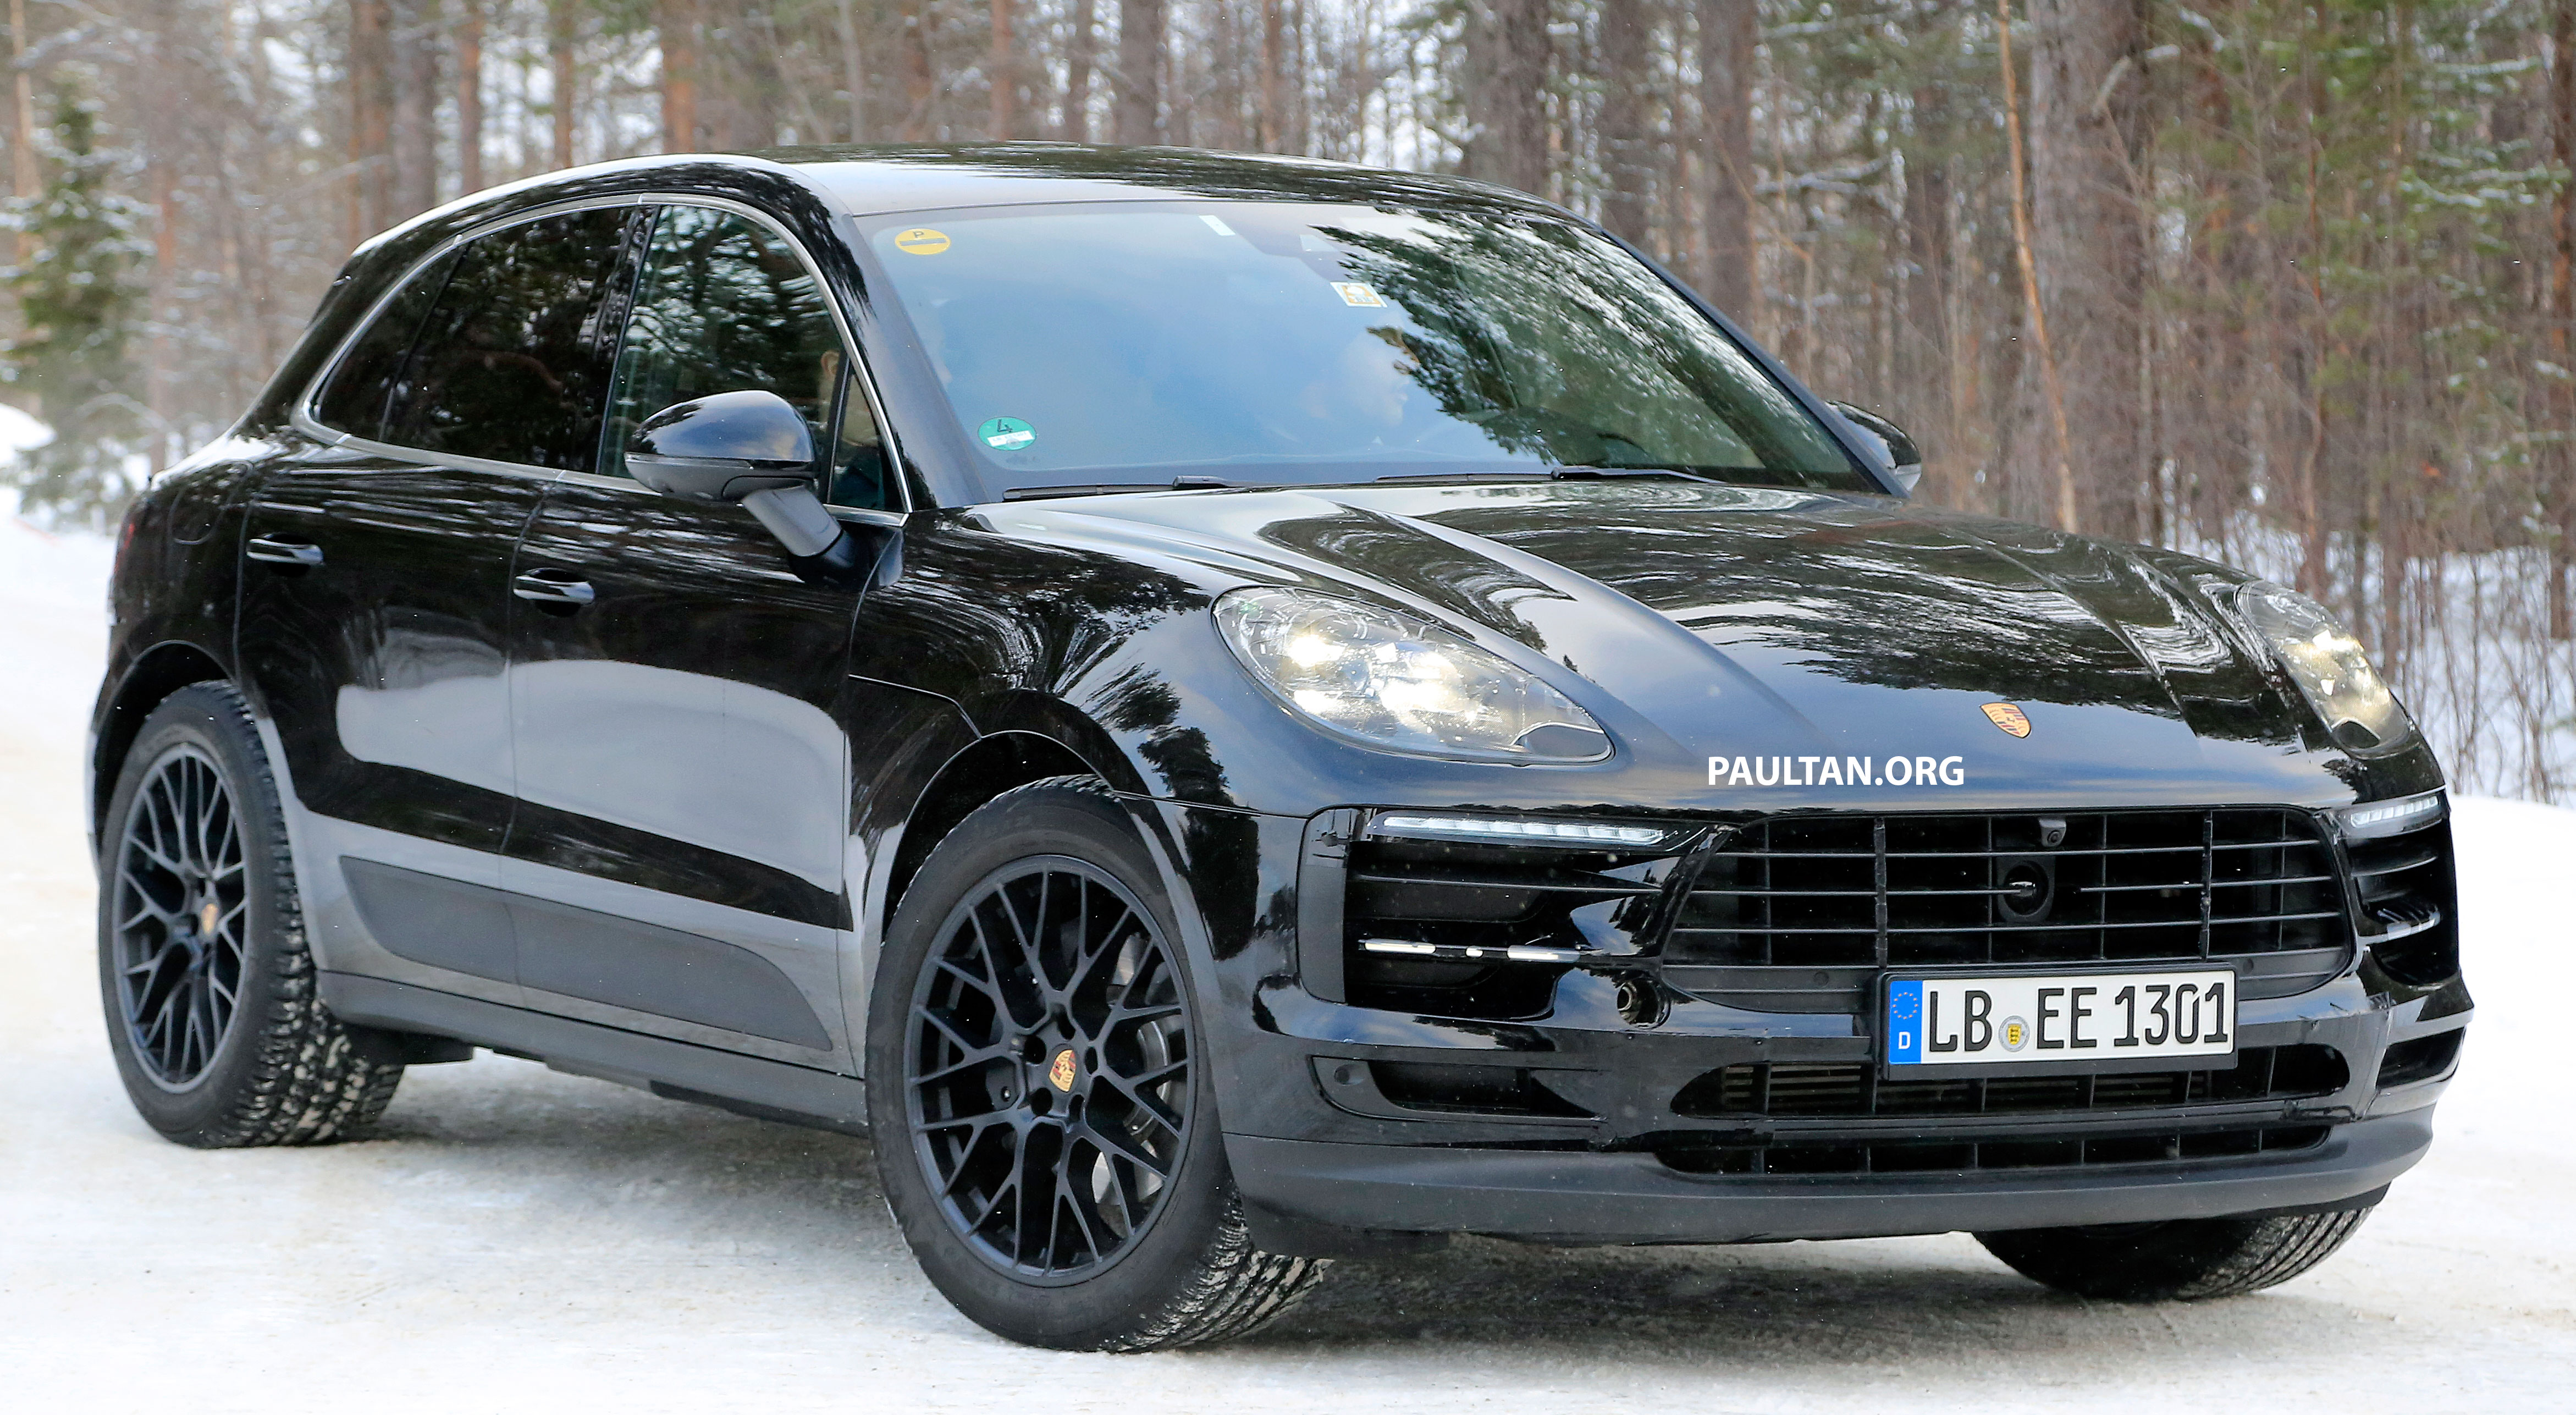 Spied Porsche Macan Facelift Undergoing Winter Trials